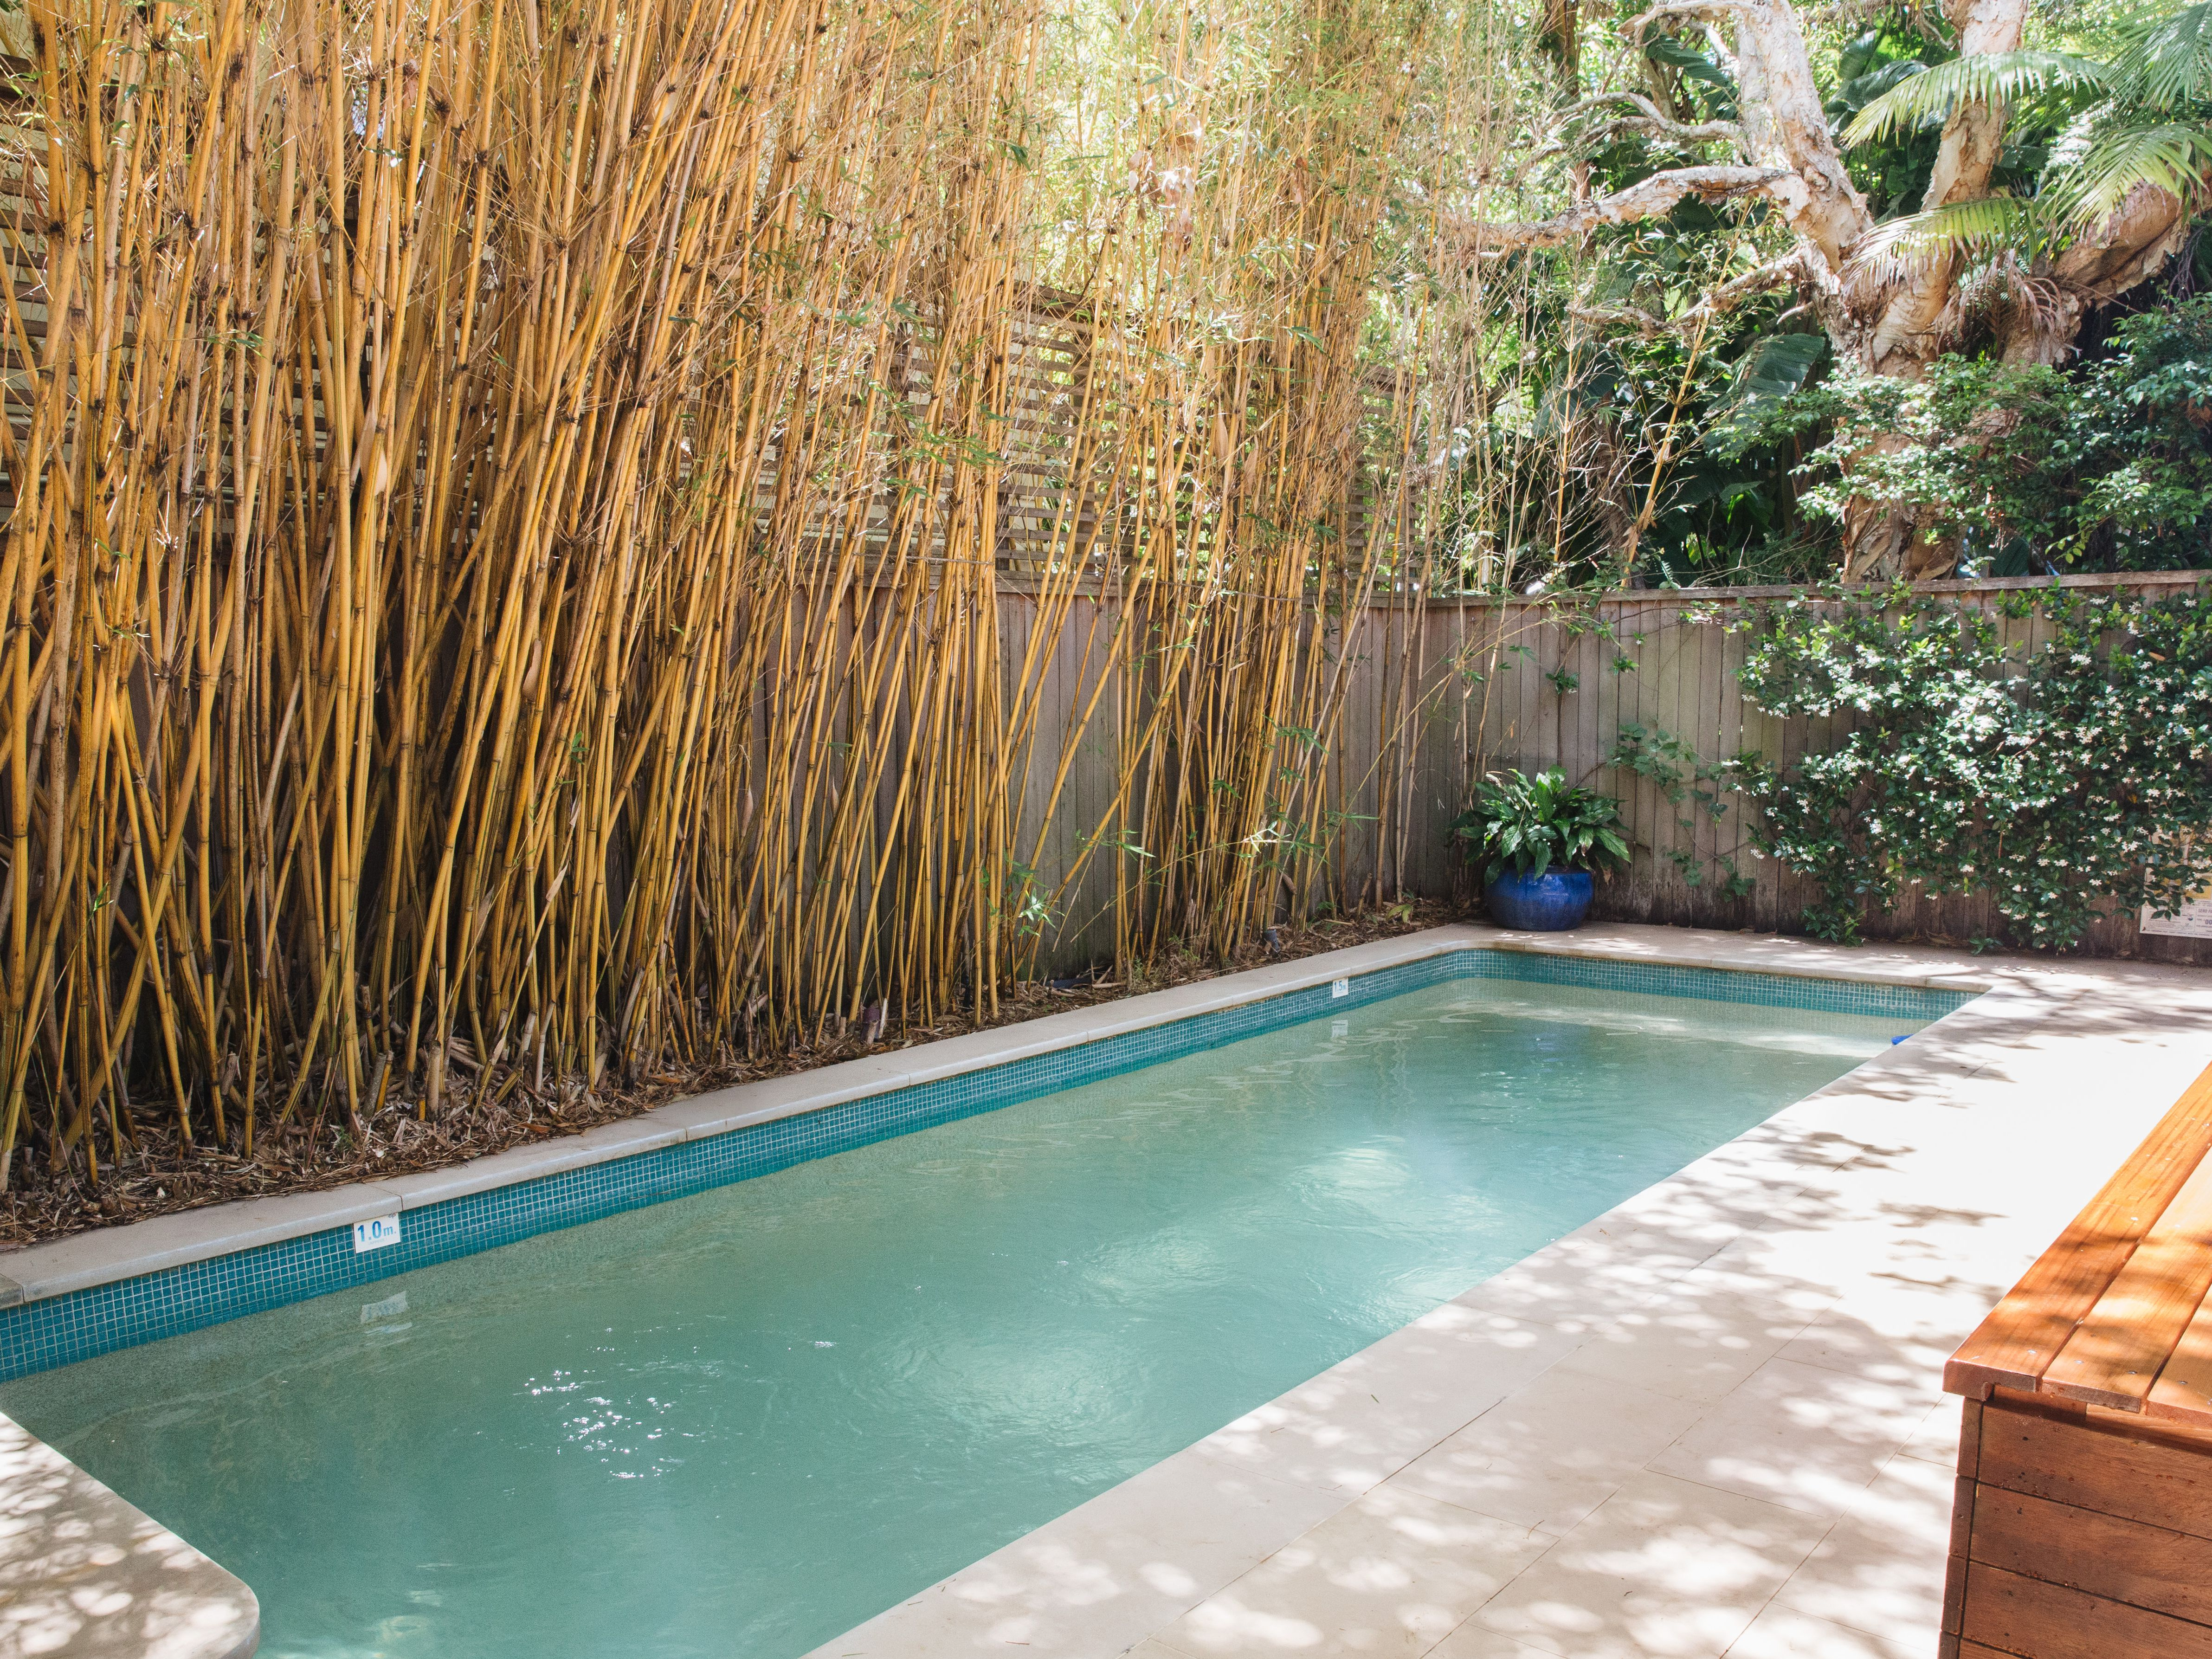 Getting To Know The Parts Of Your Swimming Pool